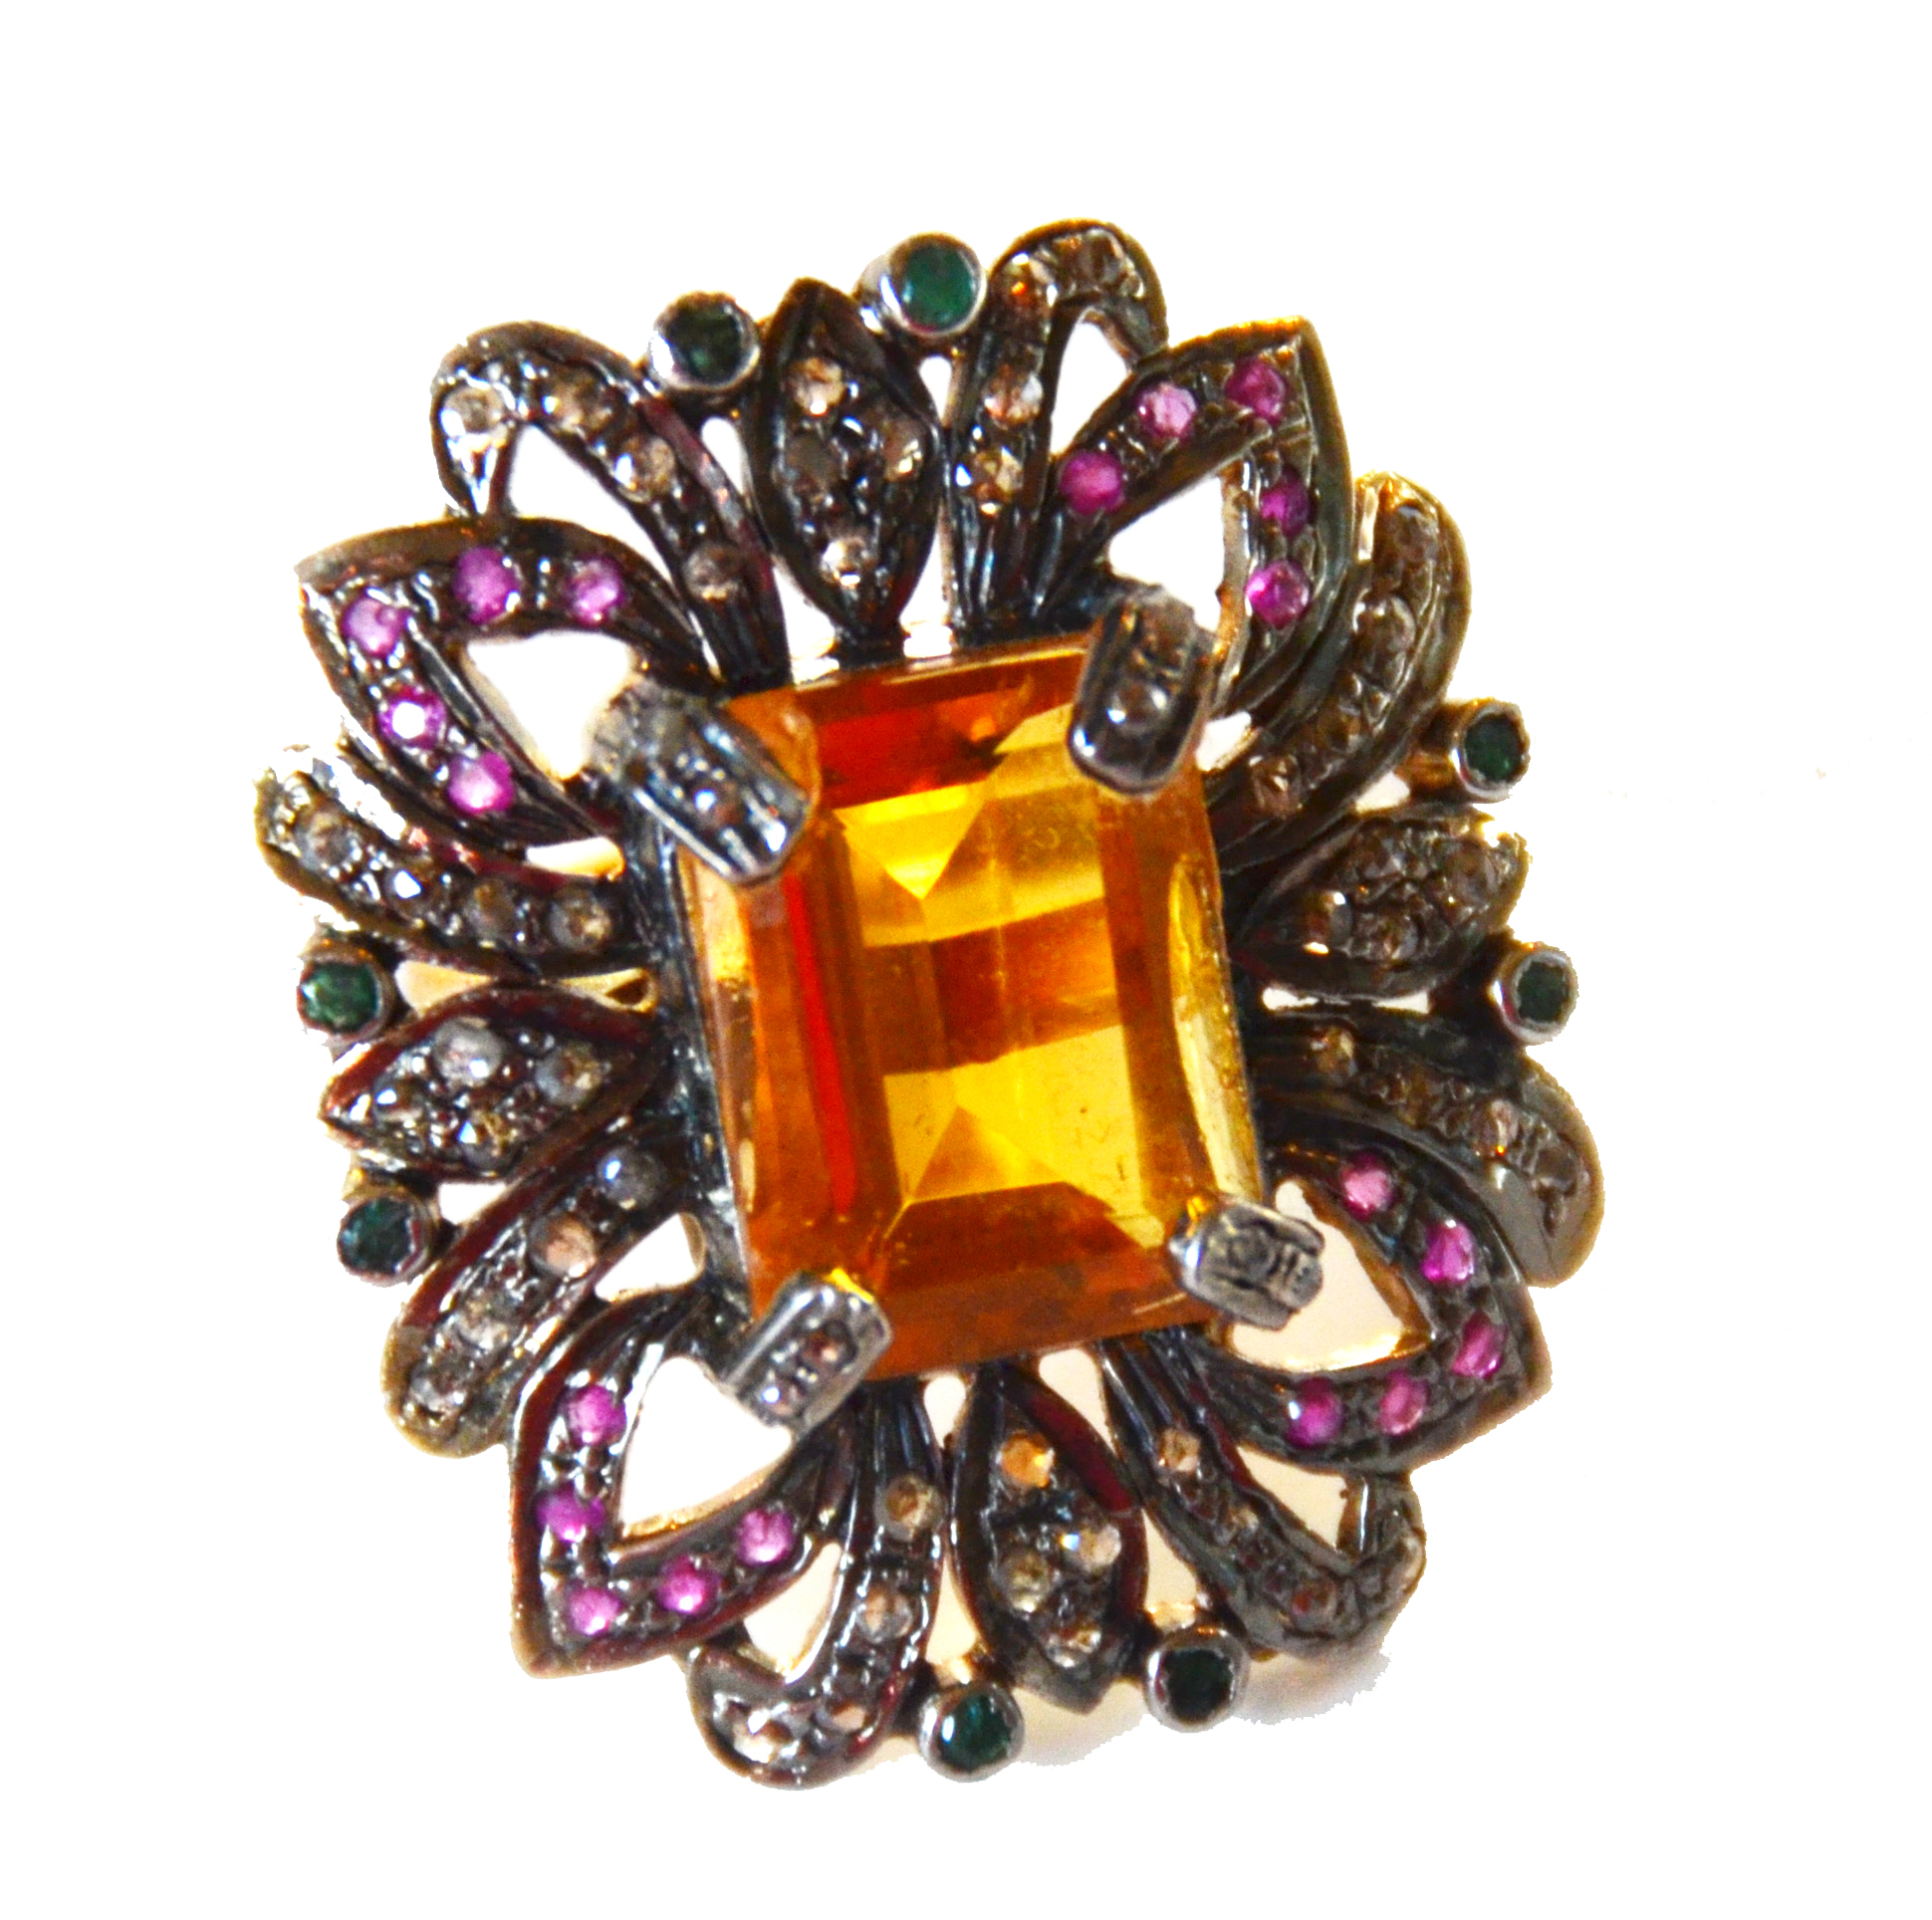 Citrine, Rose Cut Diamonds, & Rubies Vintage Ring